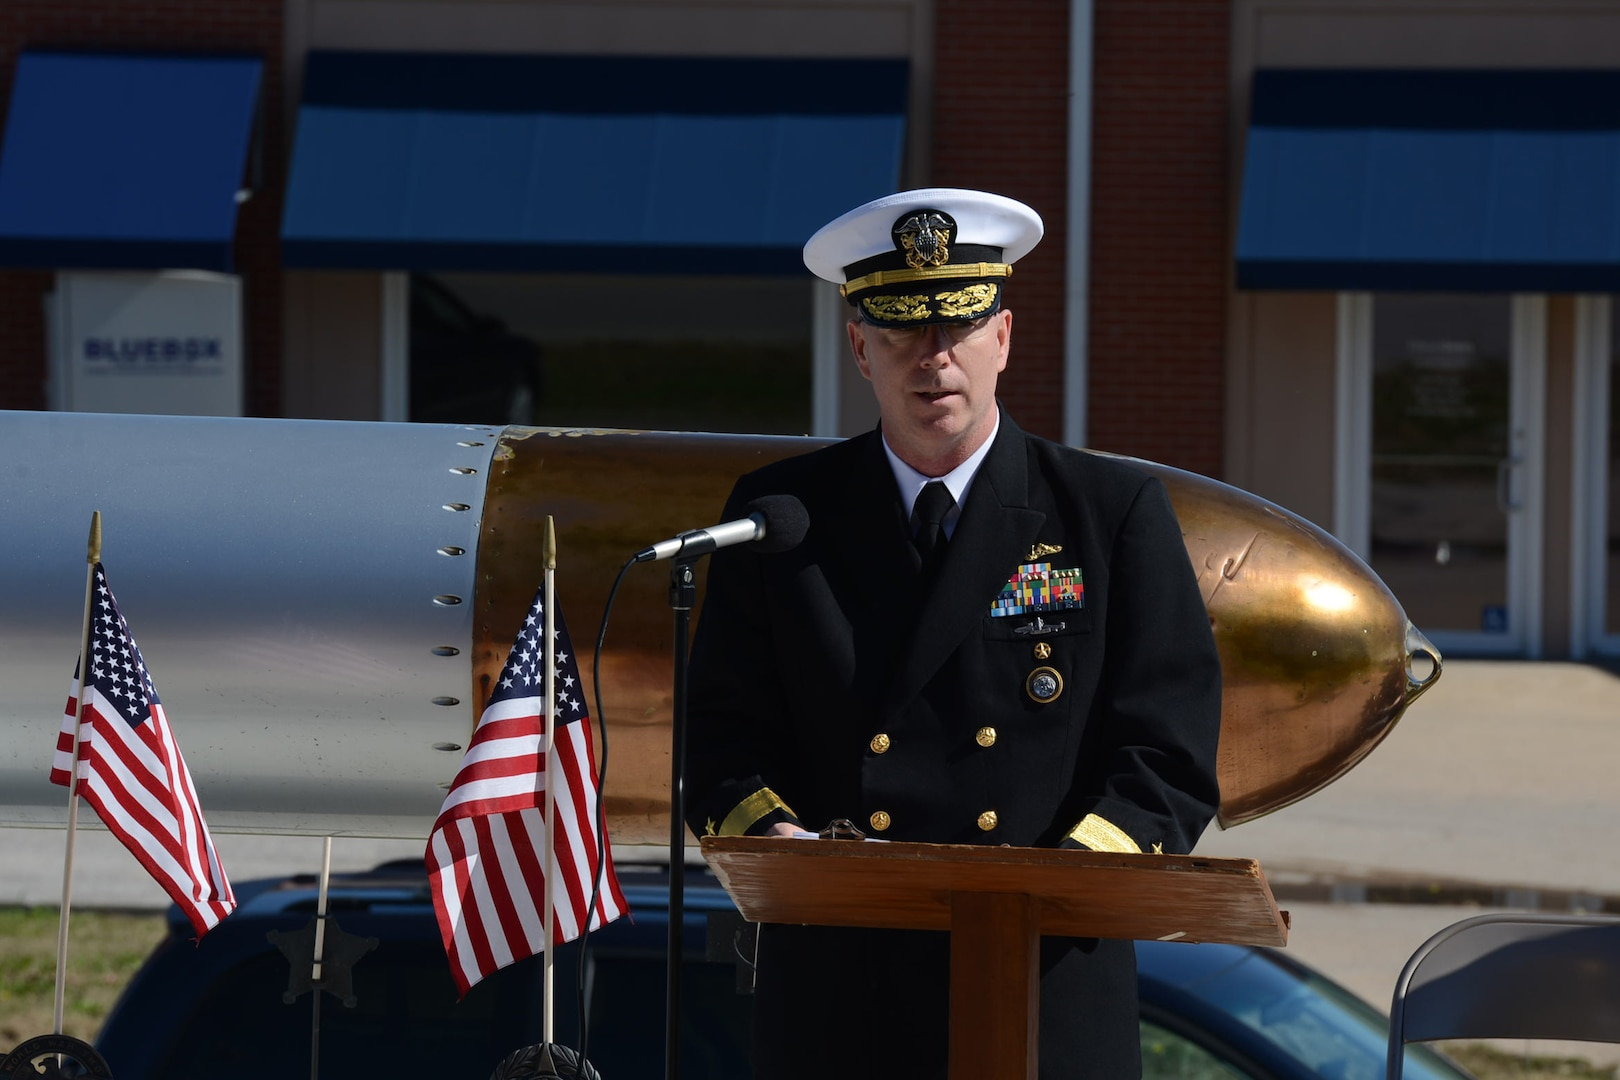 """U.S. Navy Rear Adm. William J. Houston, U.S. Strategic Command deputy director for Strategic Targeting and Nuclear Mission Planning, delivers remarks at the 55th annual USS Wahoo Memorial Service and """"Tolling of the Boats"""" ceremony at the Saunders County Courthouse in Wahoo, Neb., Oct. 15, 2017. The service marked the 74th anniversary of the loss of USS Wahoo, after conducting seven combat patrols from 1942-1943 and sinking 20 enemy vessels."""